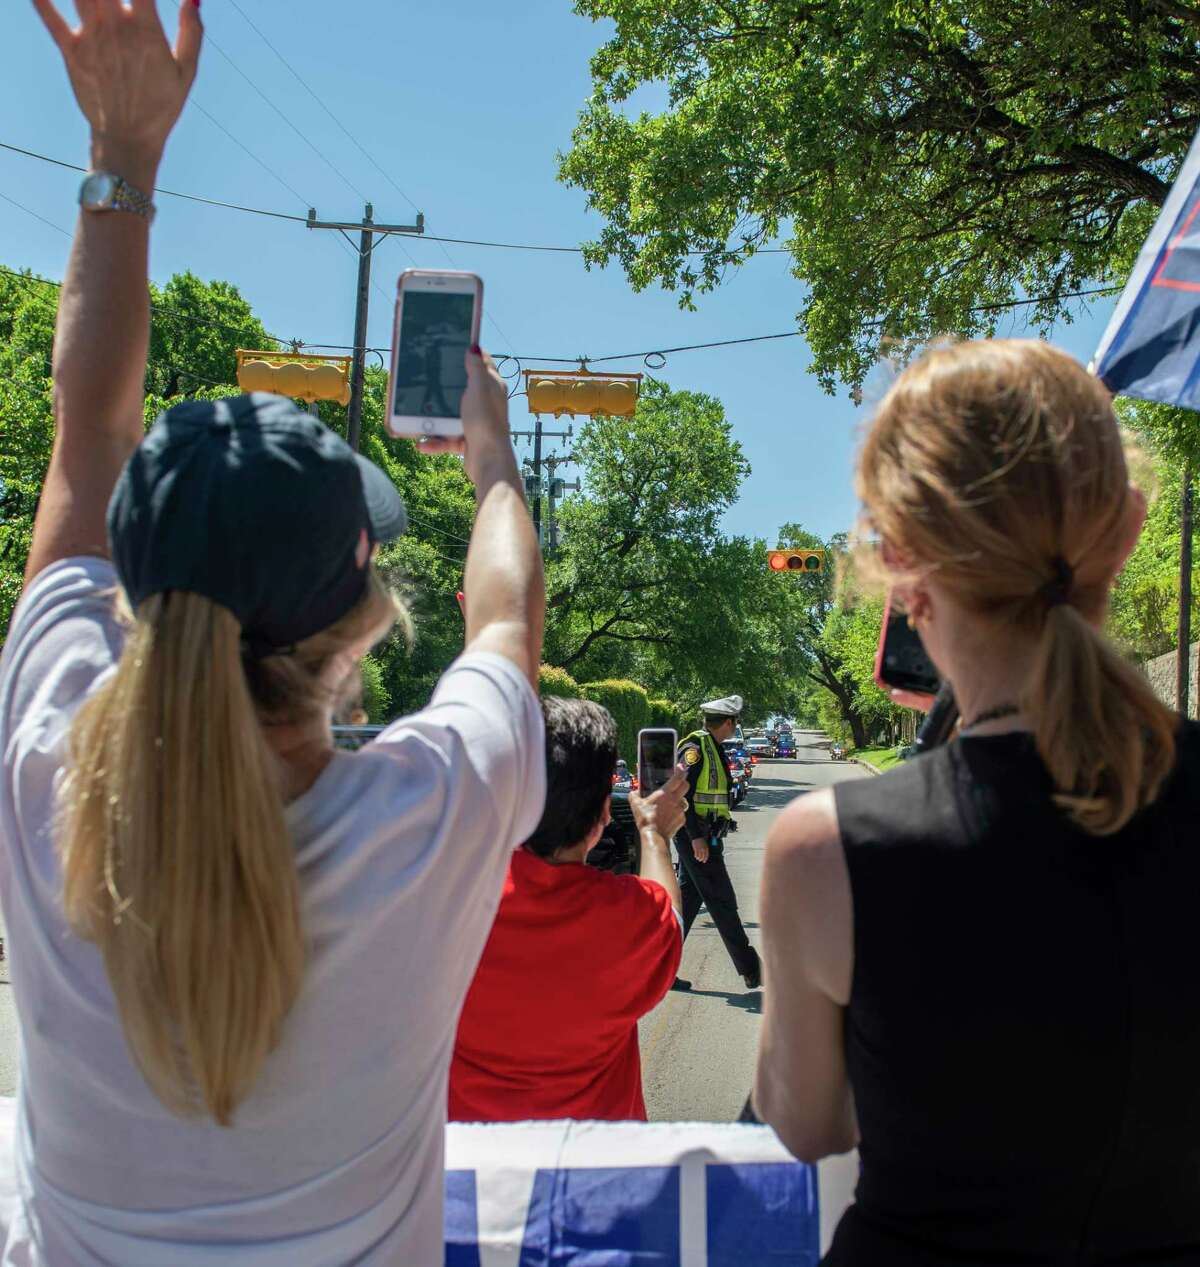 Trump supporters wave at President Donald Tump's motorcade on route to a fundraiser at Alamo Heights on Wednesday, April 10, 2019.